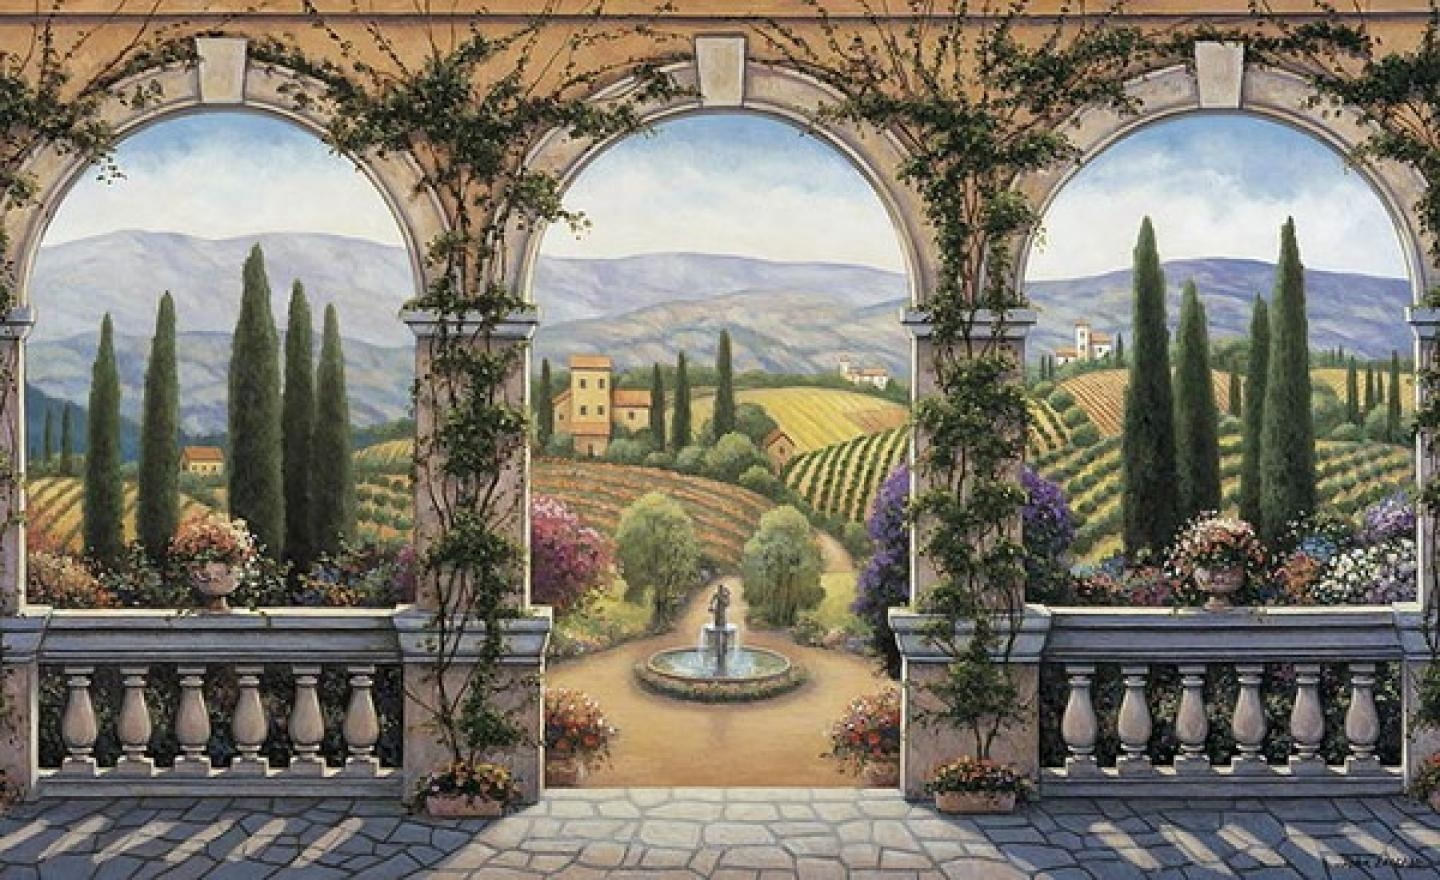 Italian Scene Wallpaper, 47 Italian Scene Images And Wallpapers Inside Italian Scene Wall Art (Image 9 of 20)